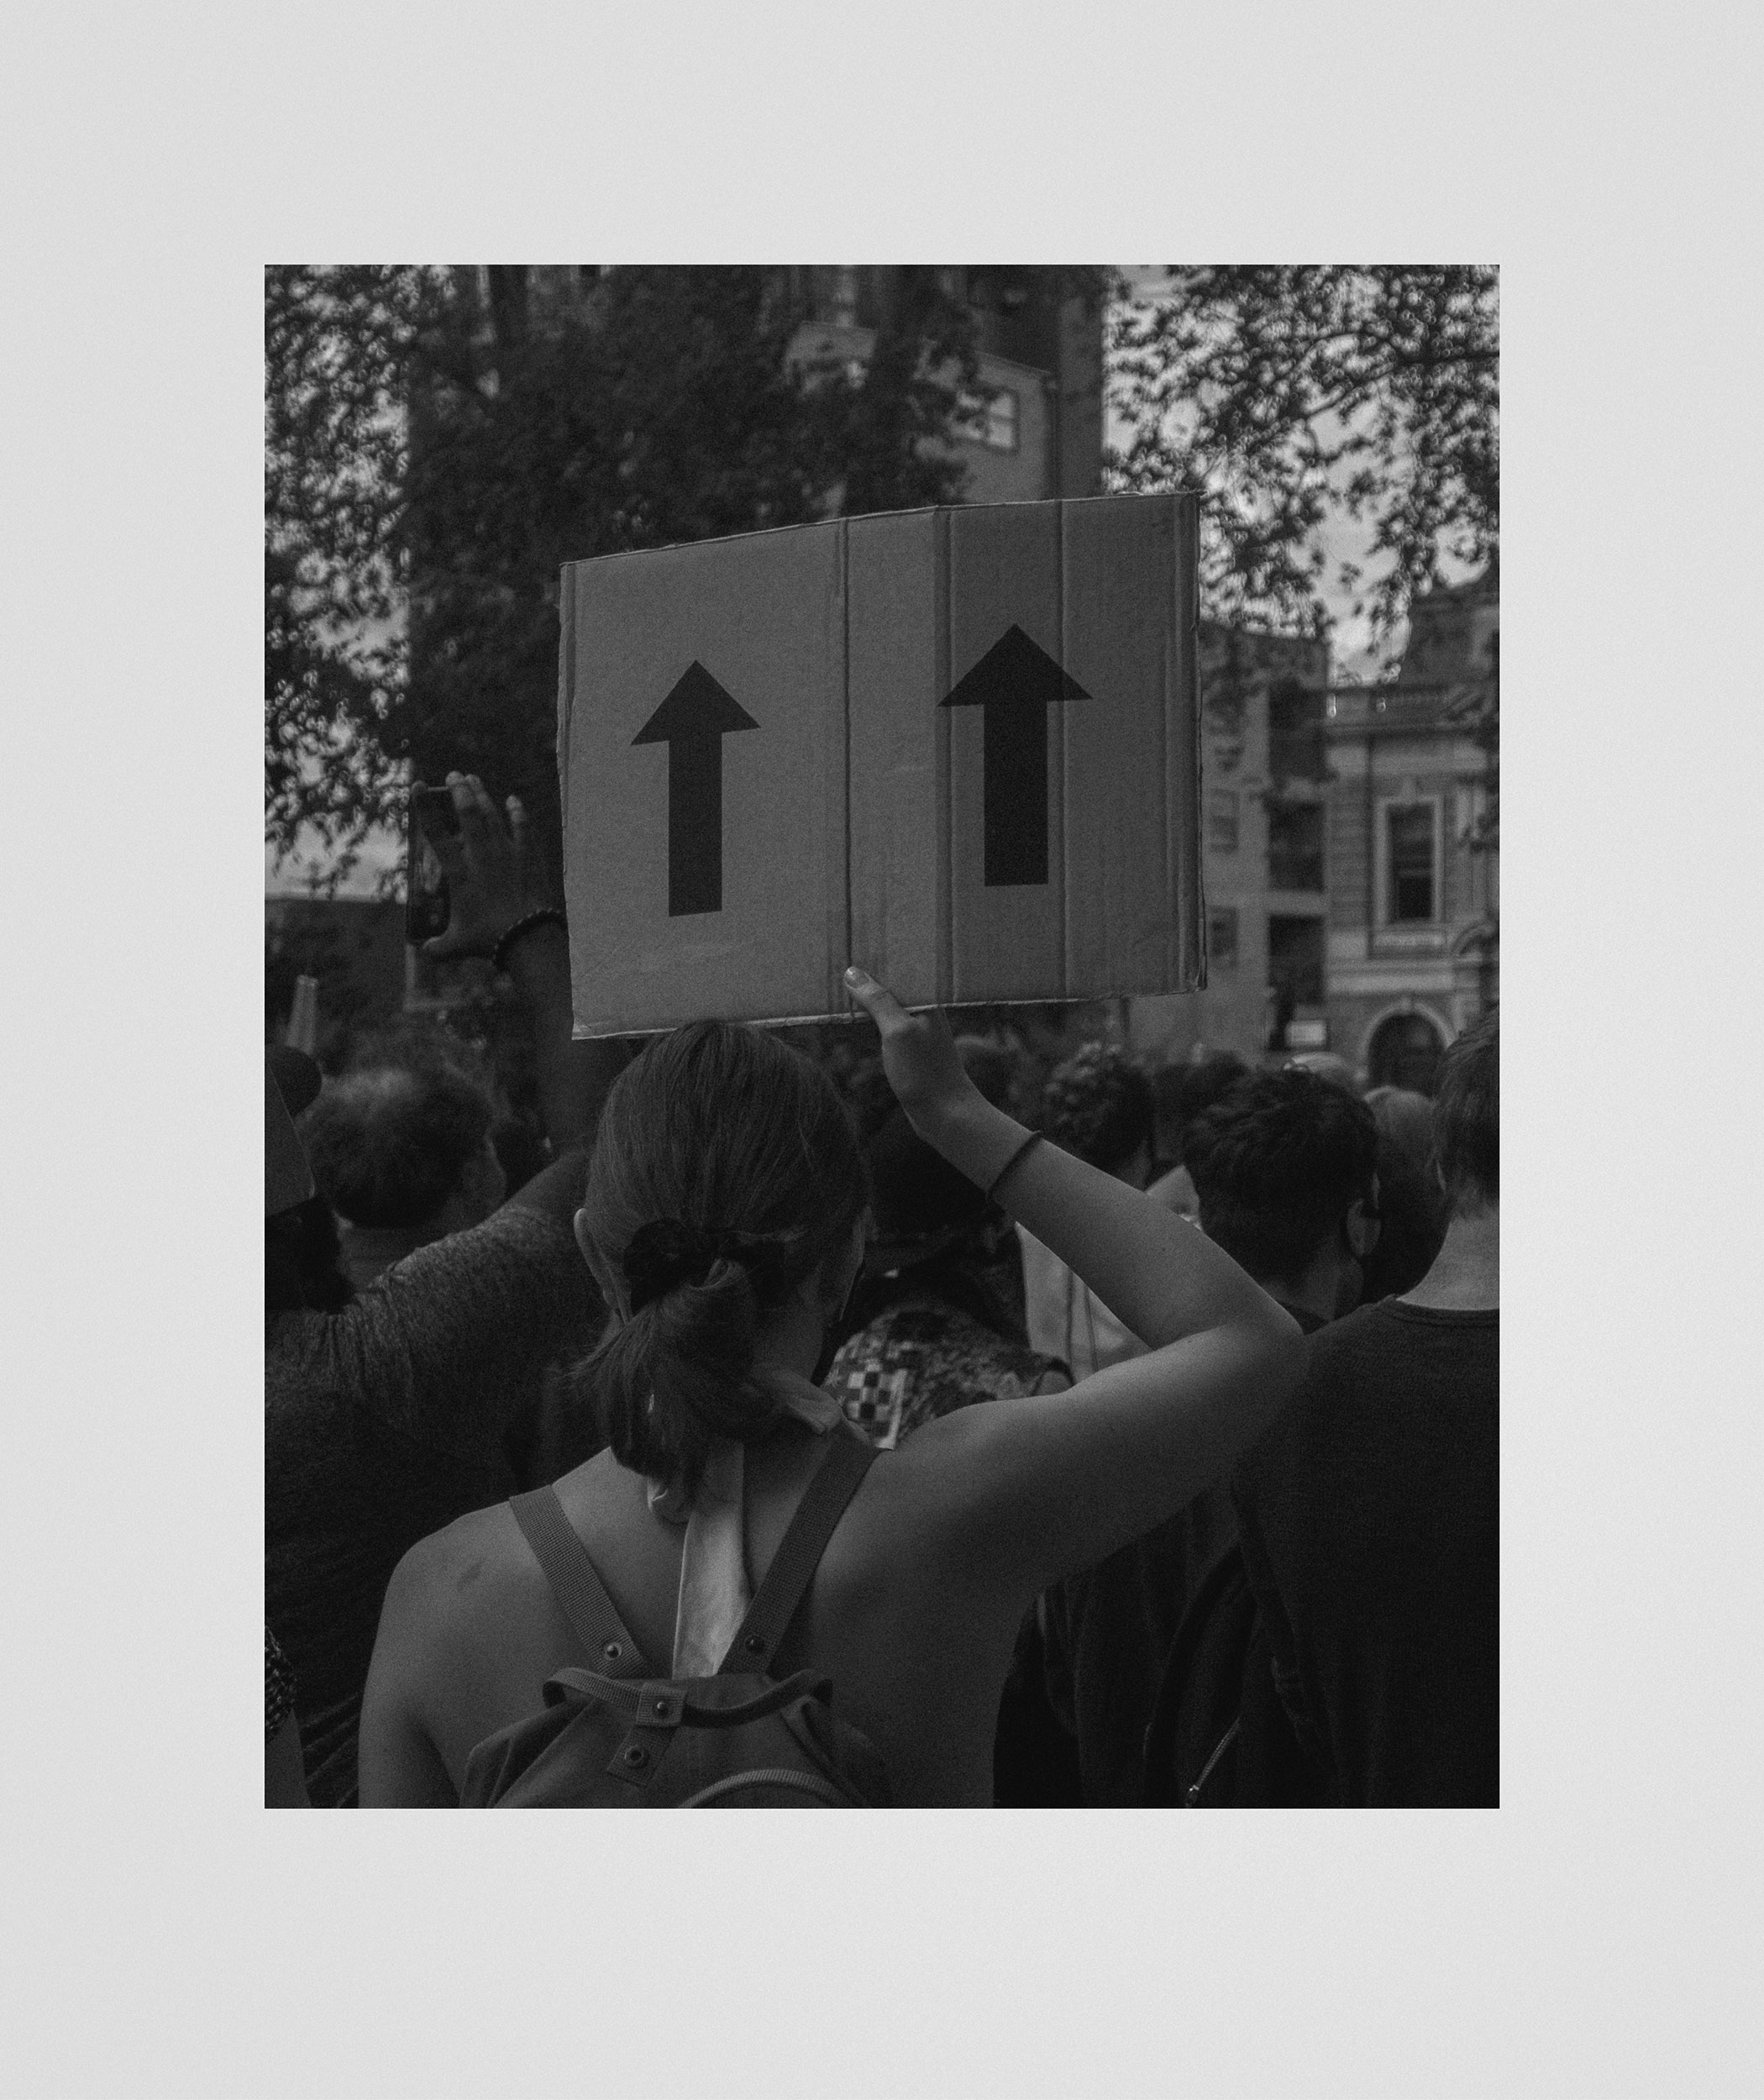 London, 13 June 2020 (print). 30x35,7cm, C-type print on archival paper, unframed.